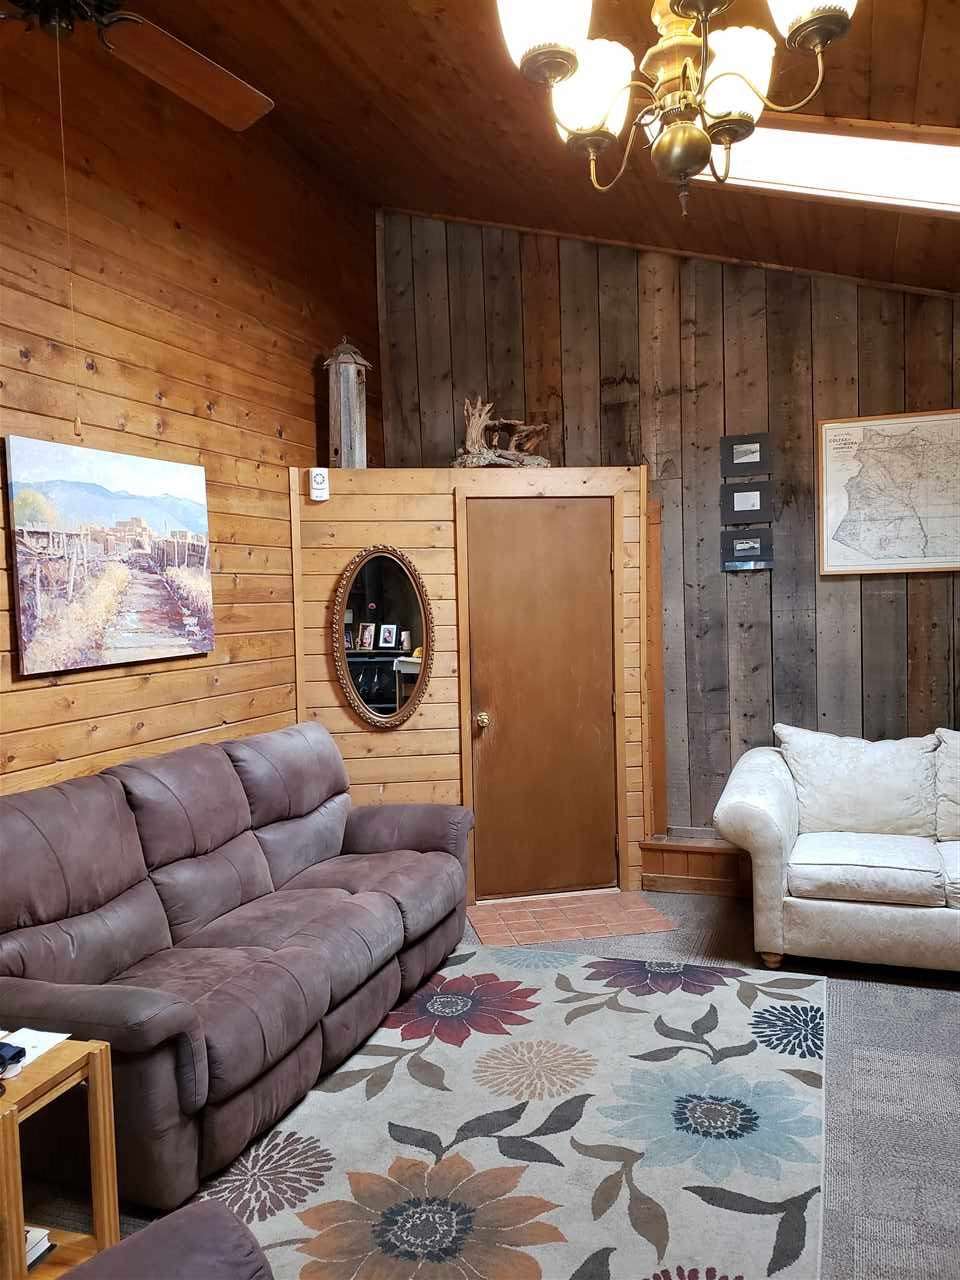 242 Therma Dr, Eagle Nest, NM 87718